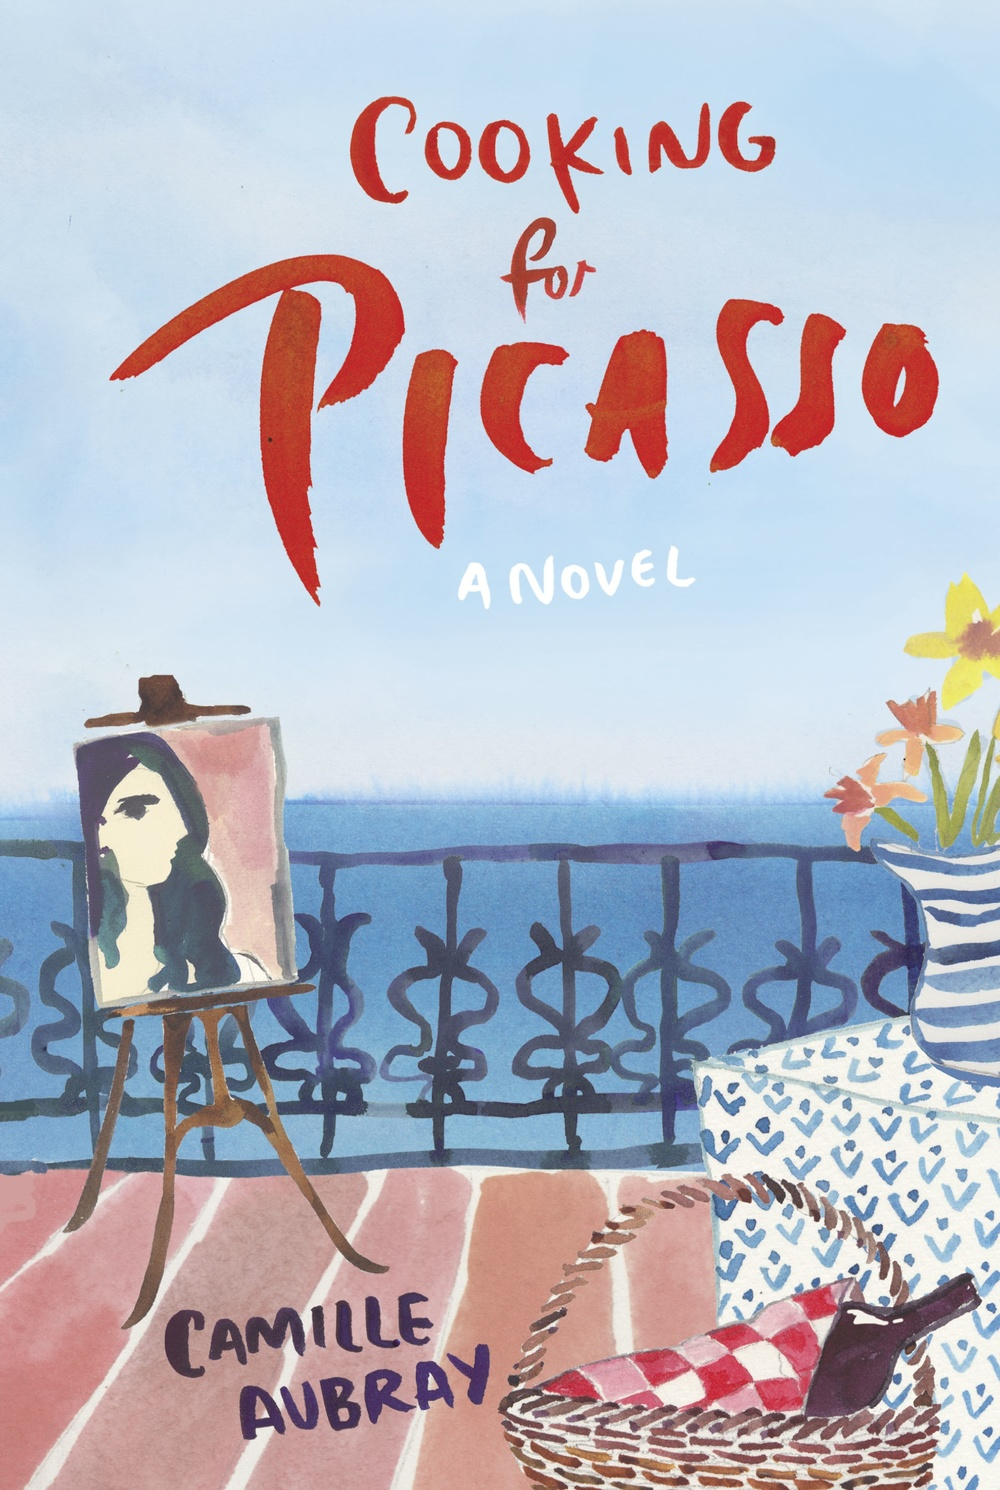 Author Luncheon at Bernard\'s on October 12: Cooking for Picasso